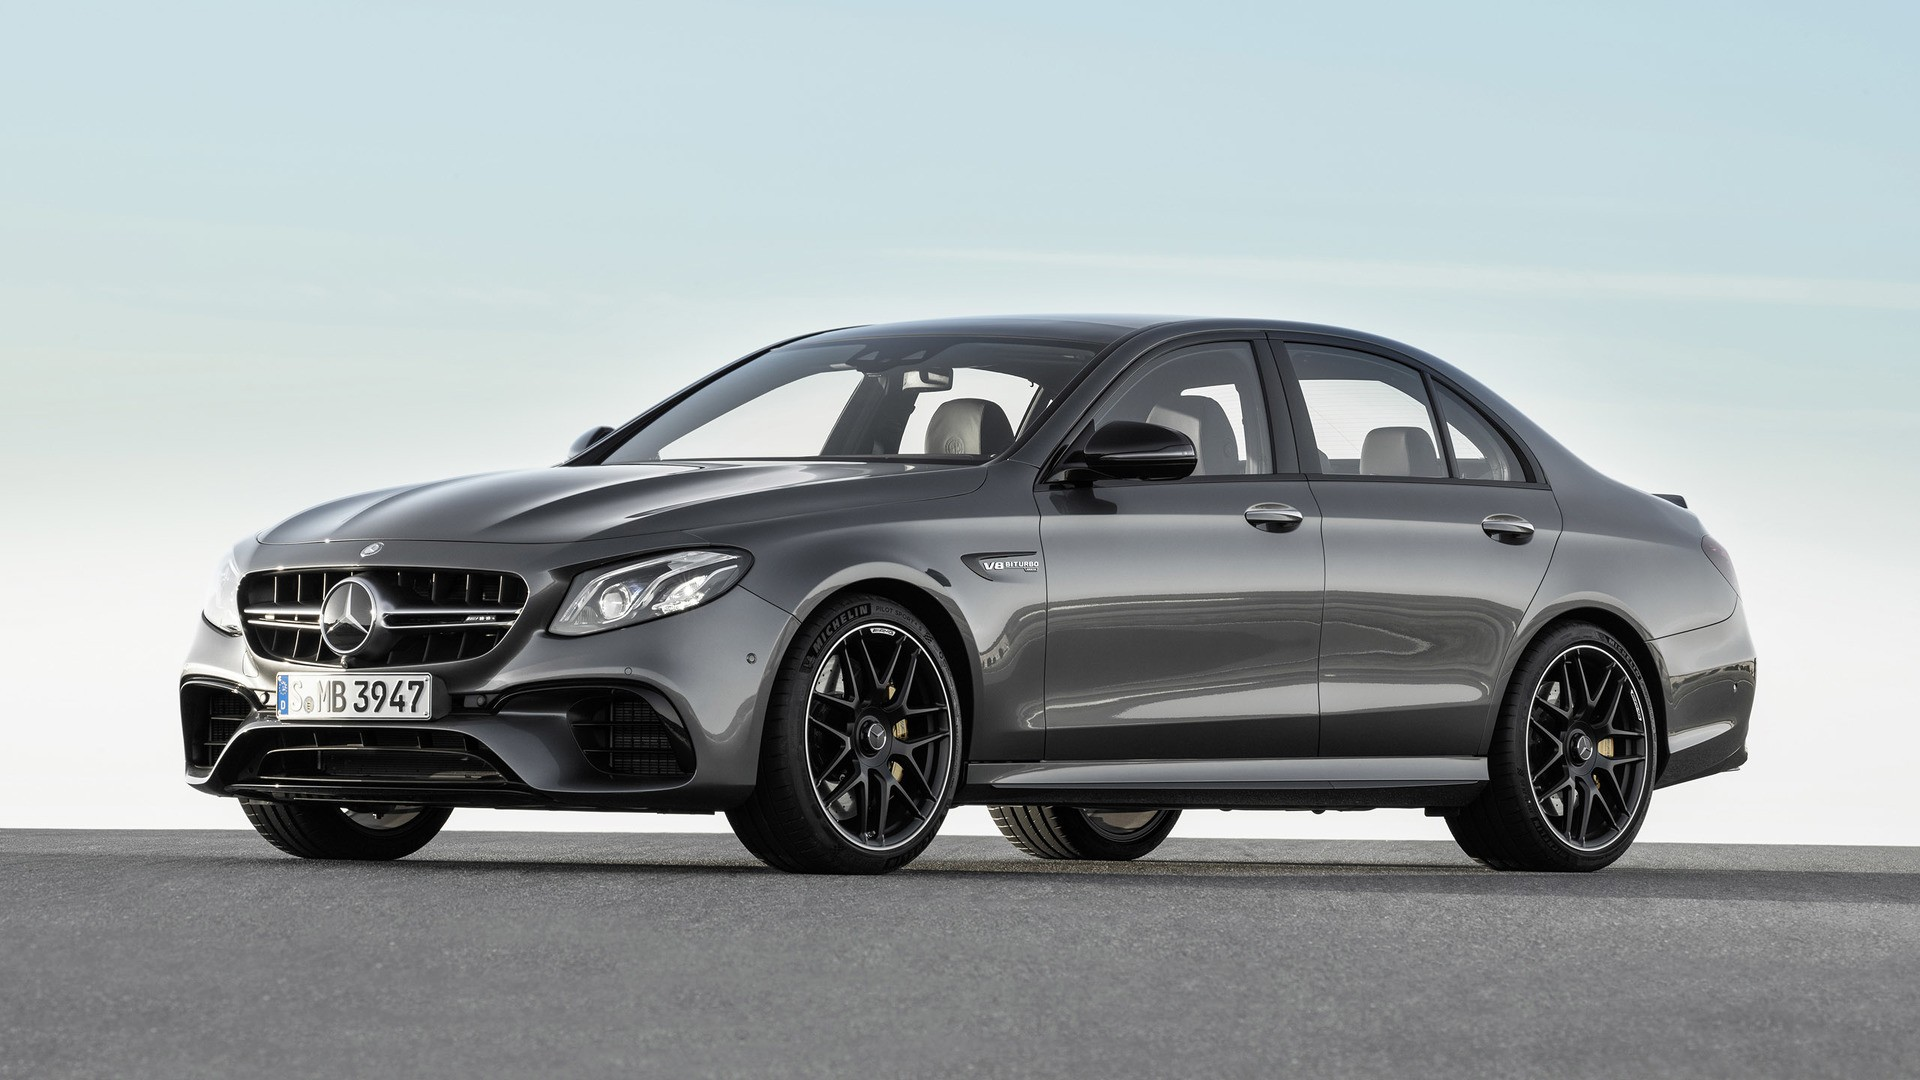 Mercedes benz uk prices e63 4matic sedan from gbp 78 935 for Price for mercedes benz